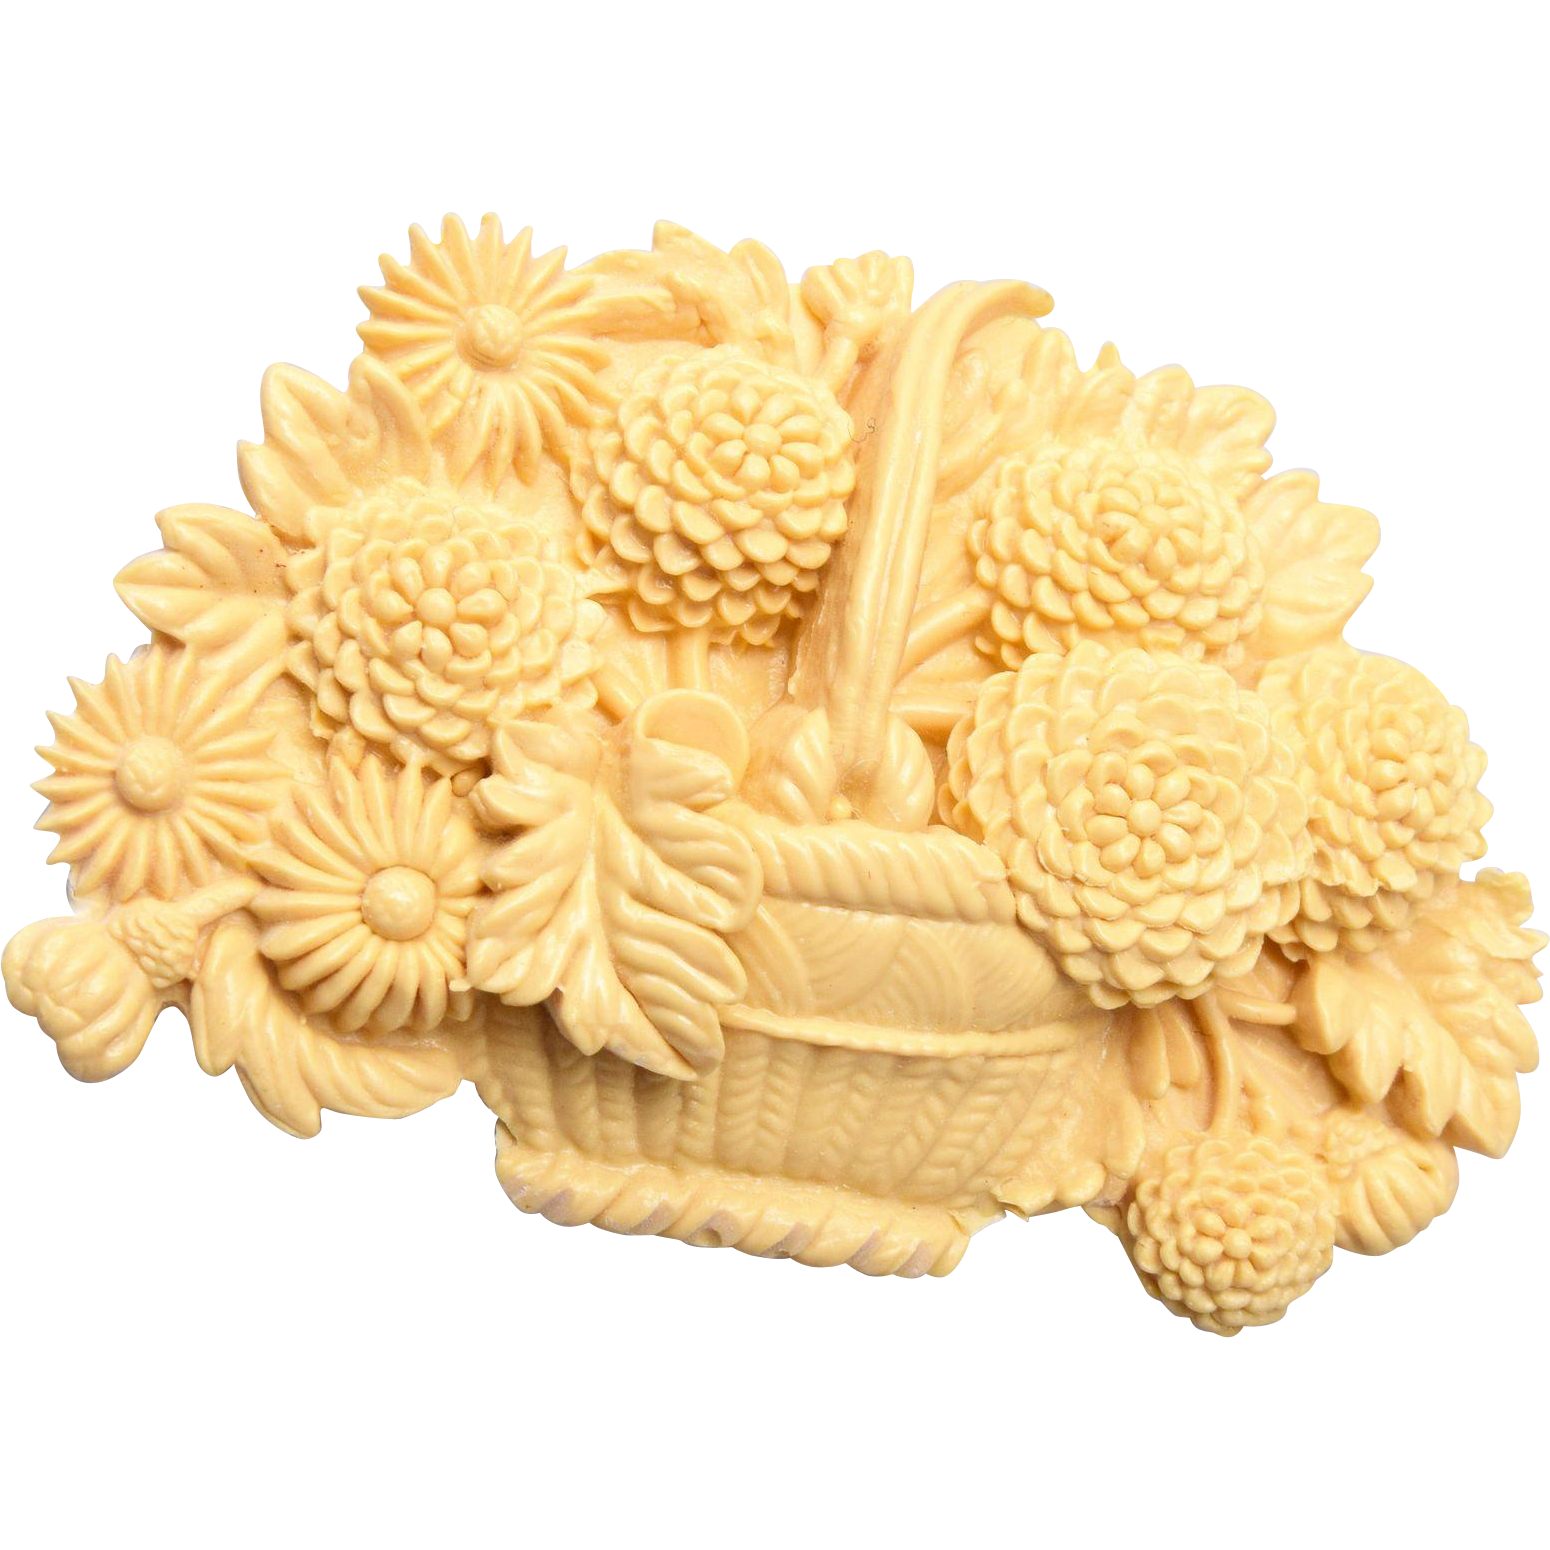 Lupa J Carved Bone Brooch or Pendant